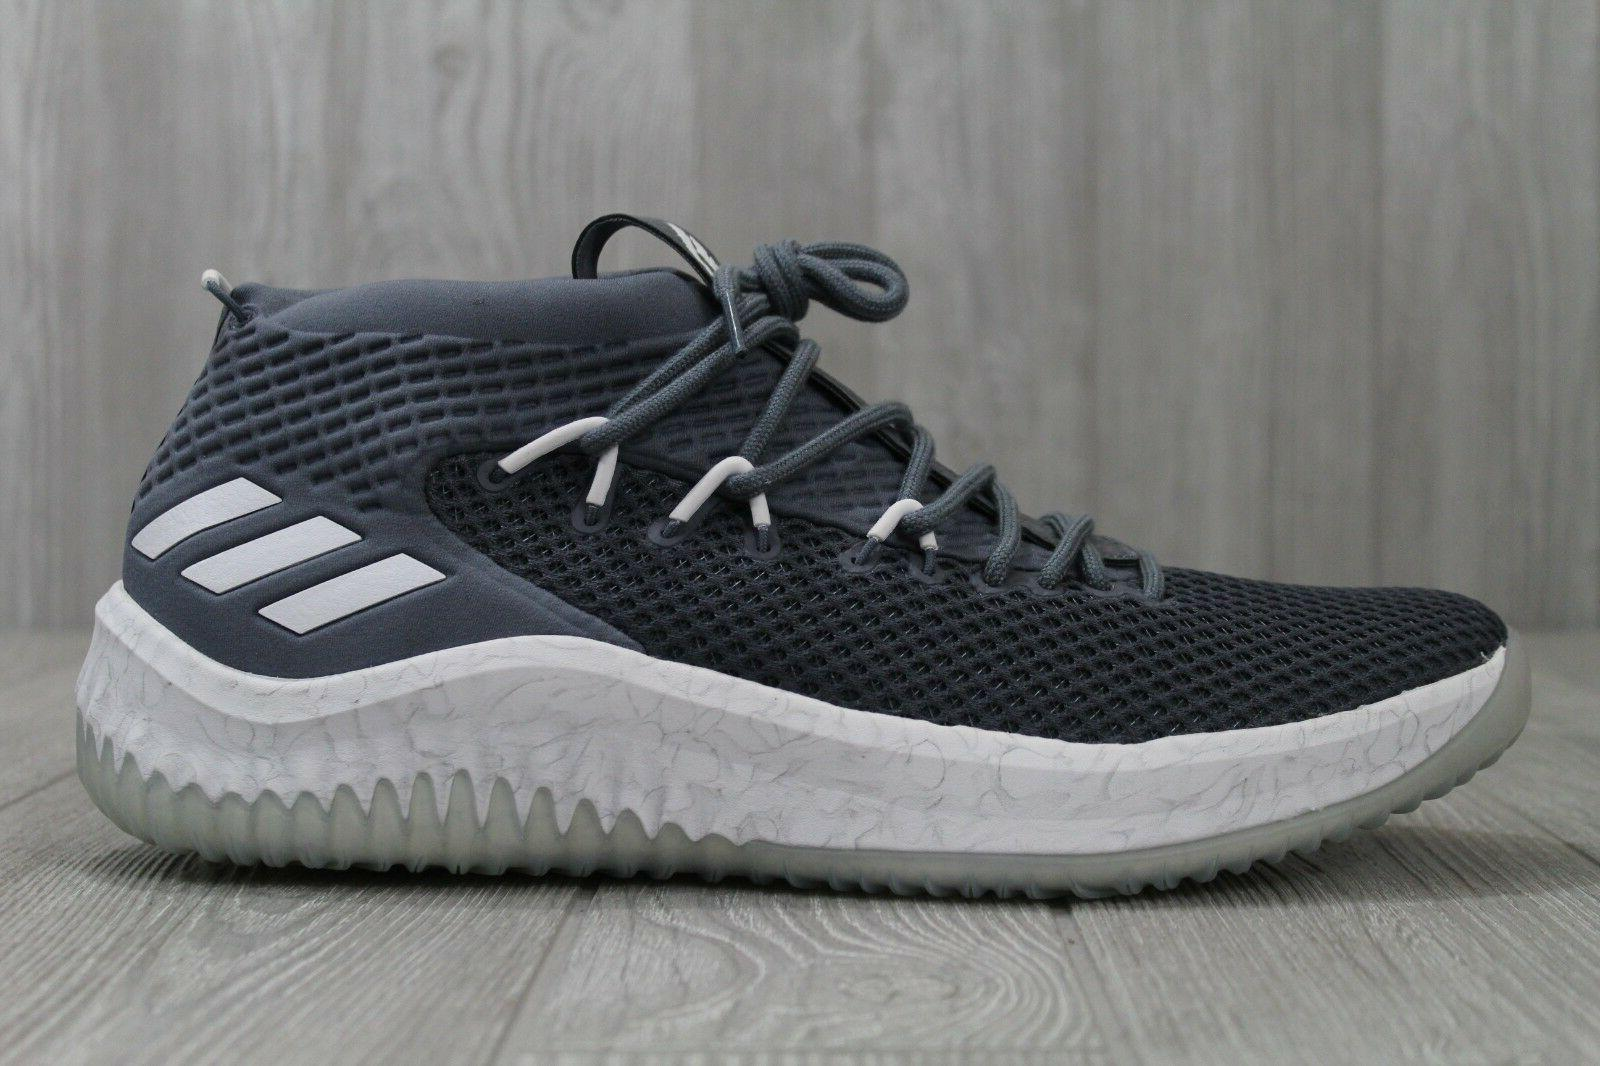 33 dame 4 basketball shoes grey white